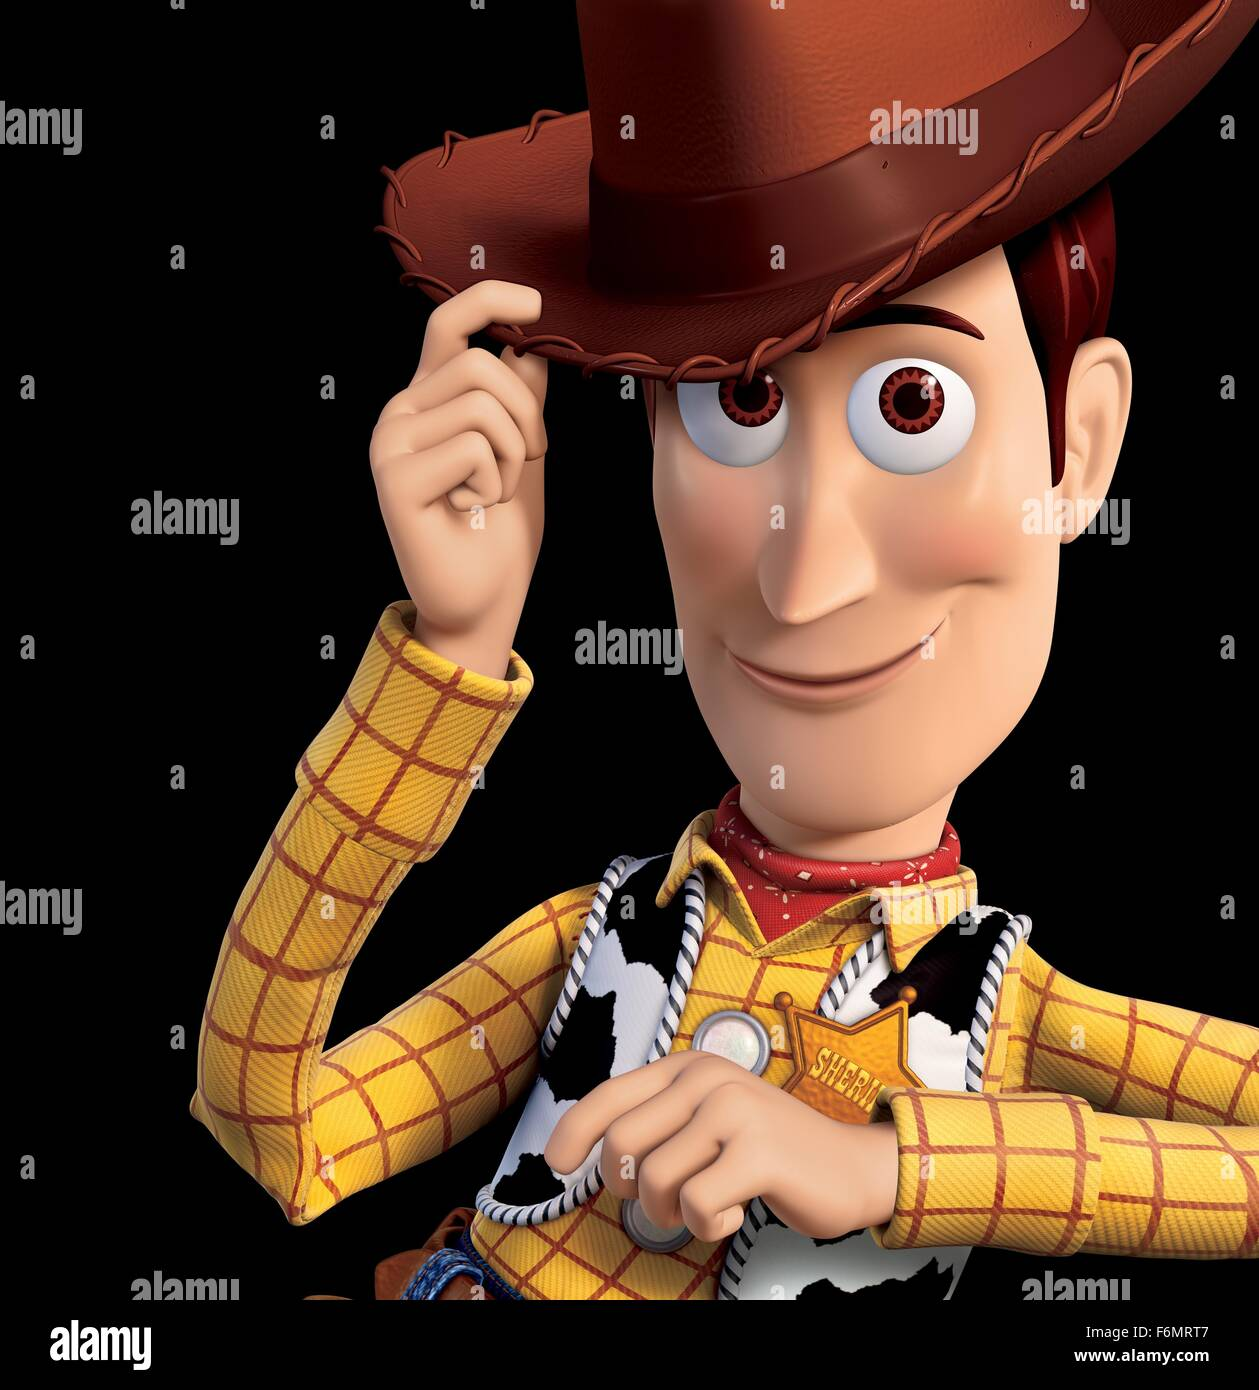 Woody Toy Story Stock Photos Woody Toy Story Stock Images Alamy